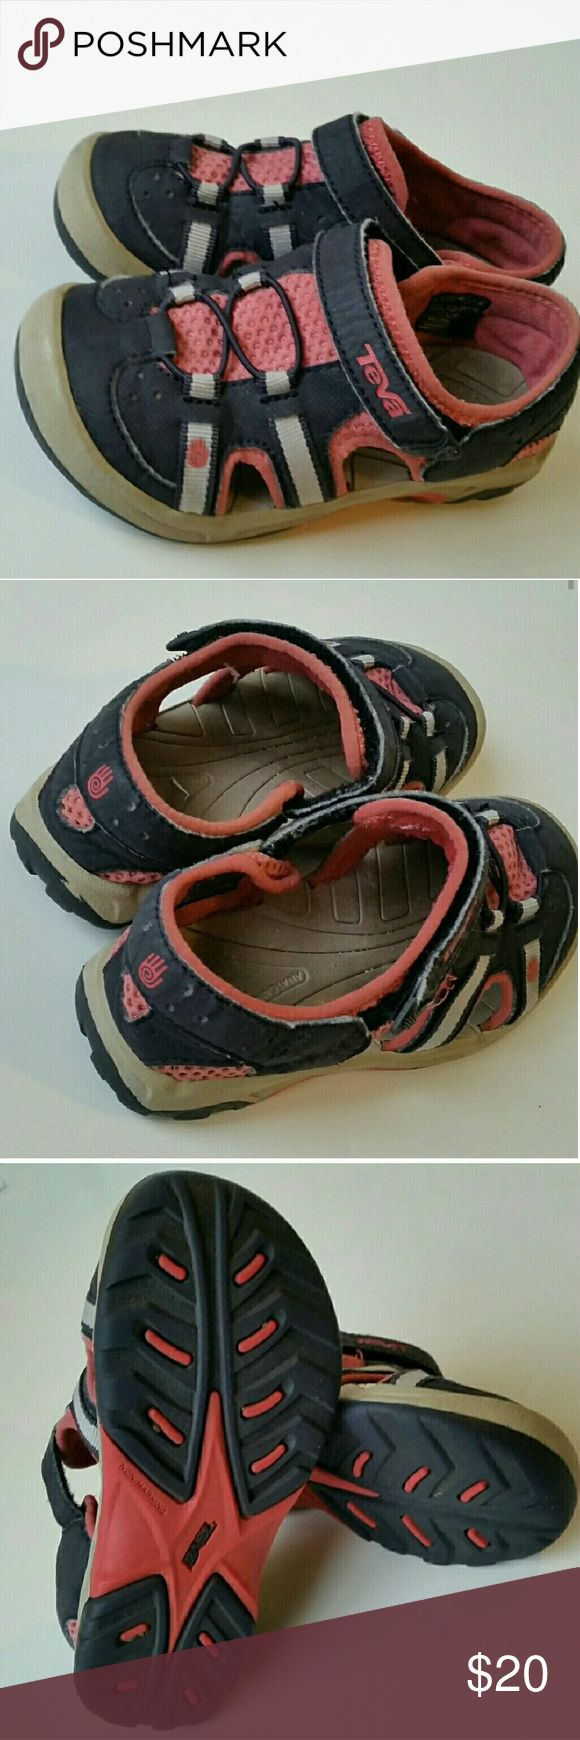 TEVA Toddler Sneaker Sandals Excellent condition. Waterproof and washable. Velcro closure. Teva Shoes